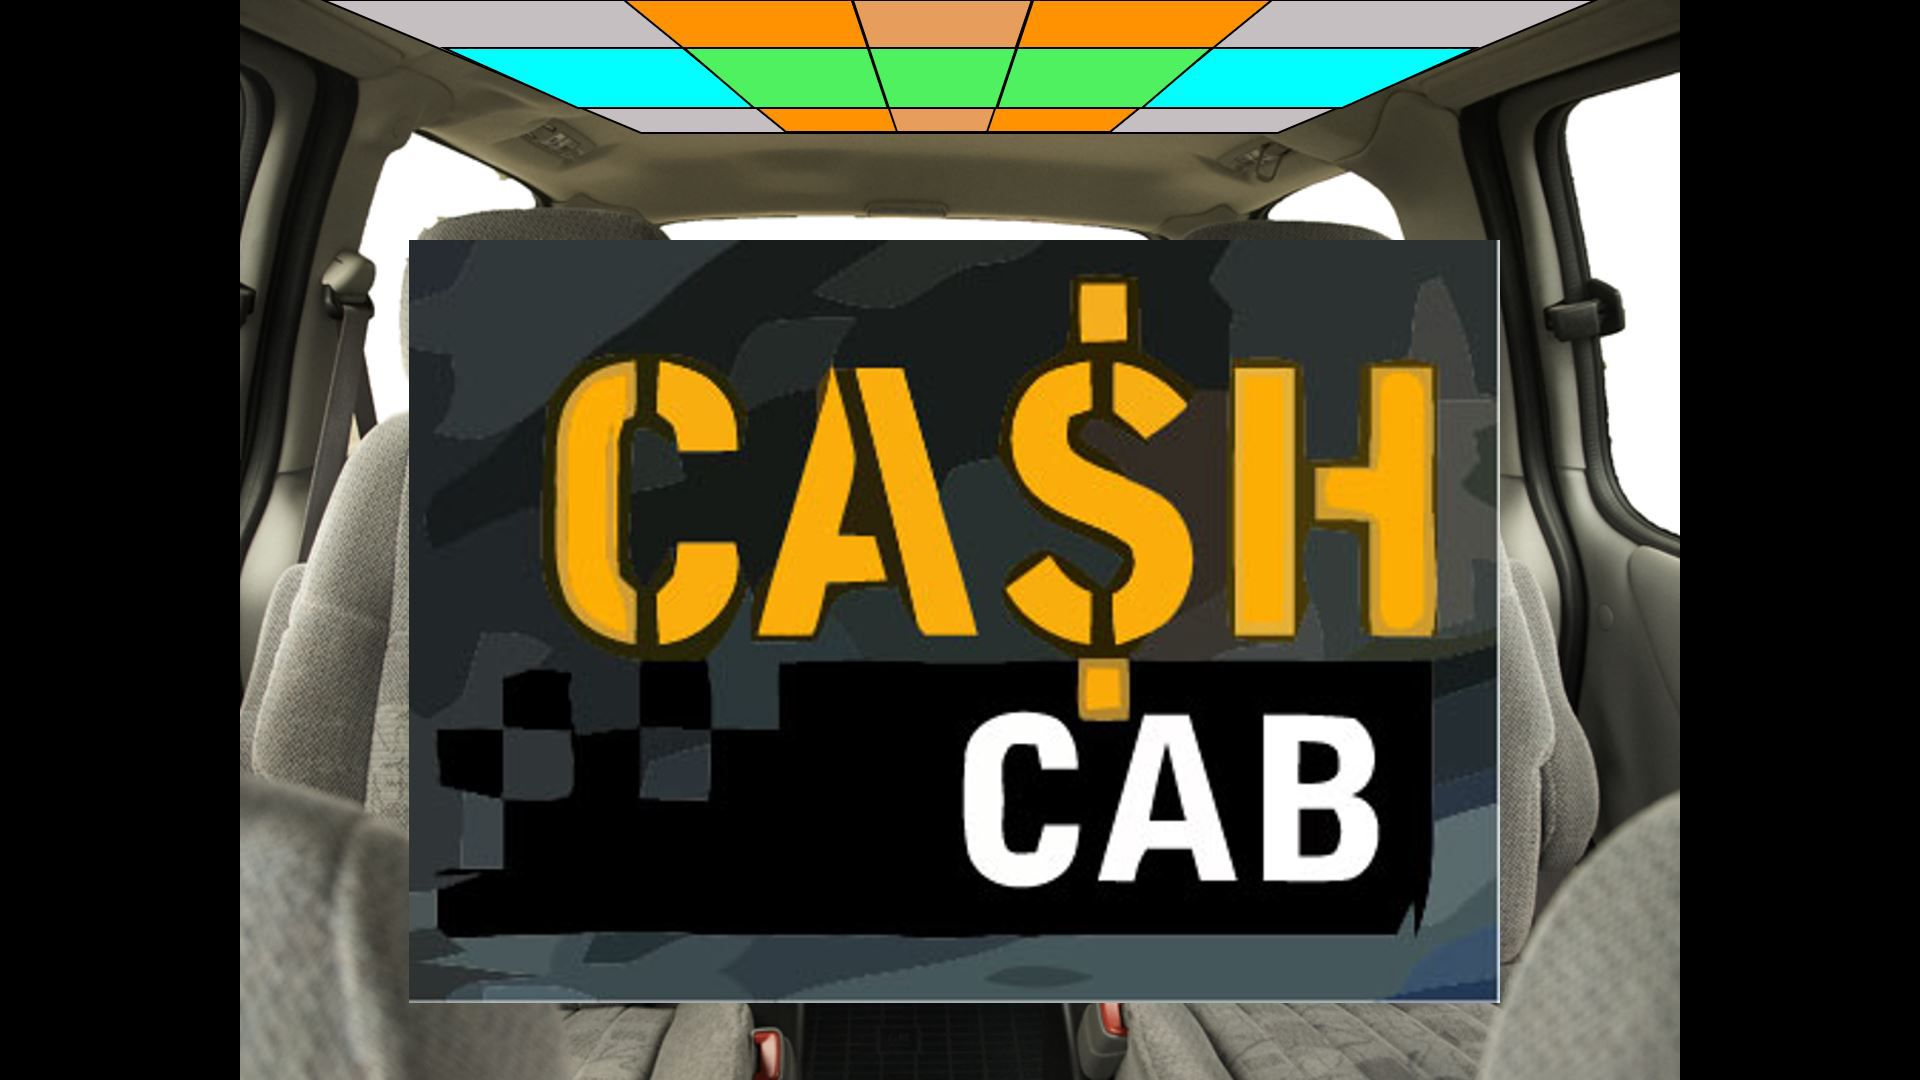 Cash Cab PowerPoint template opening screen.